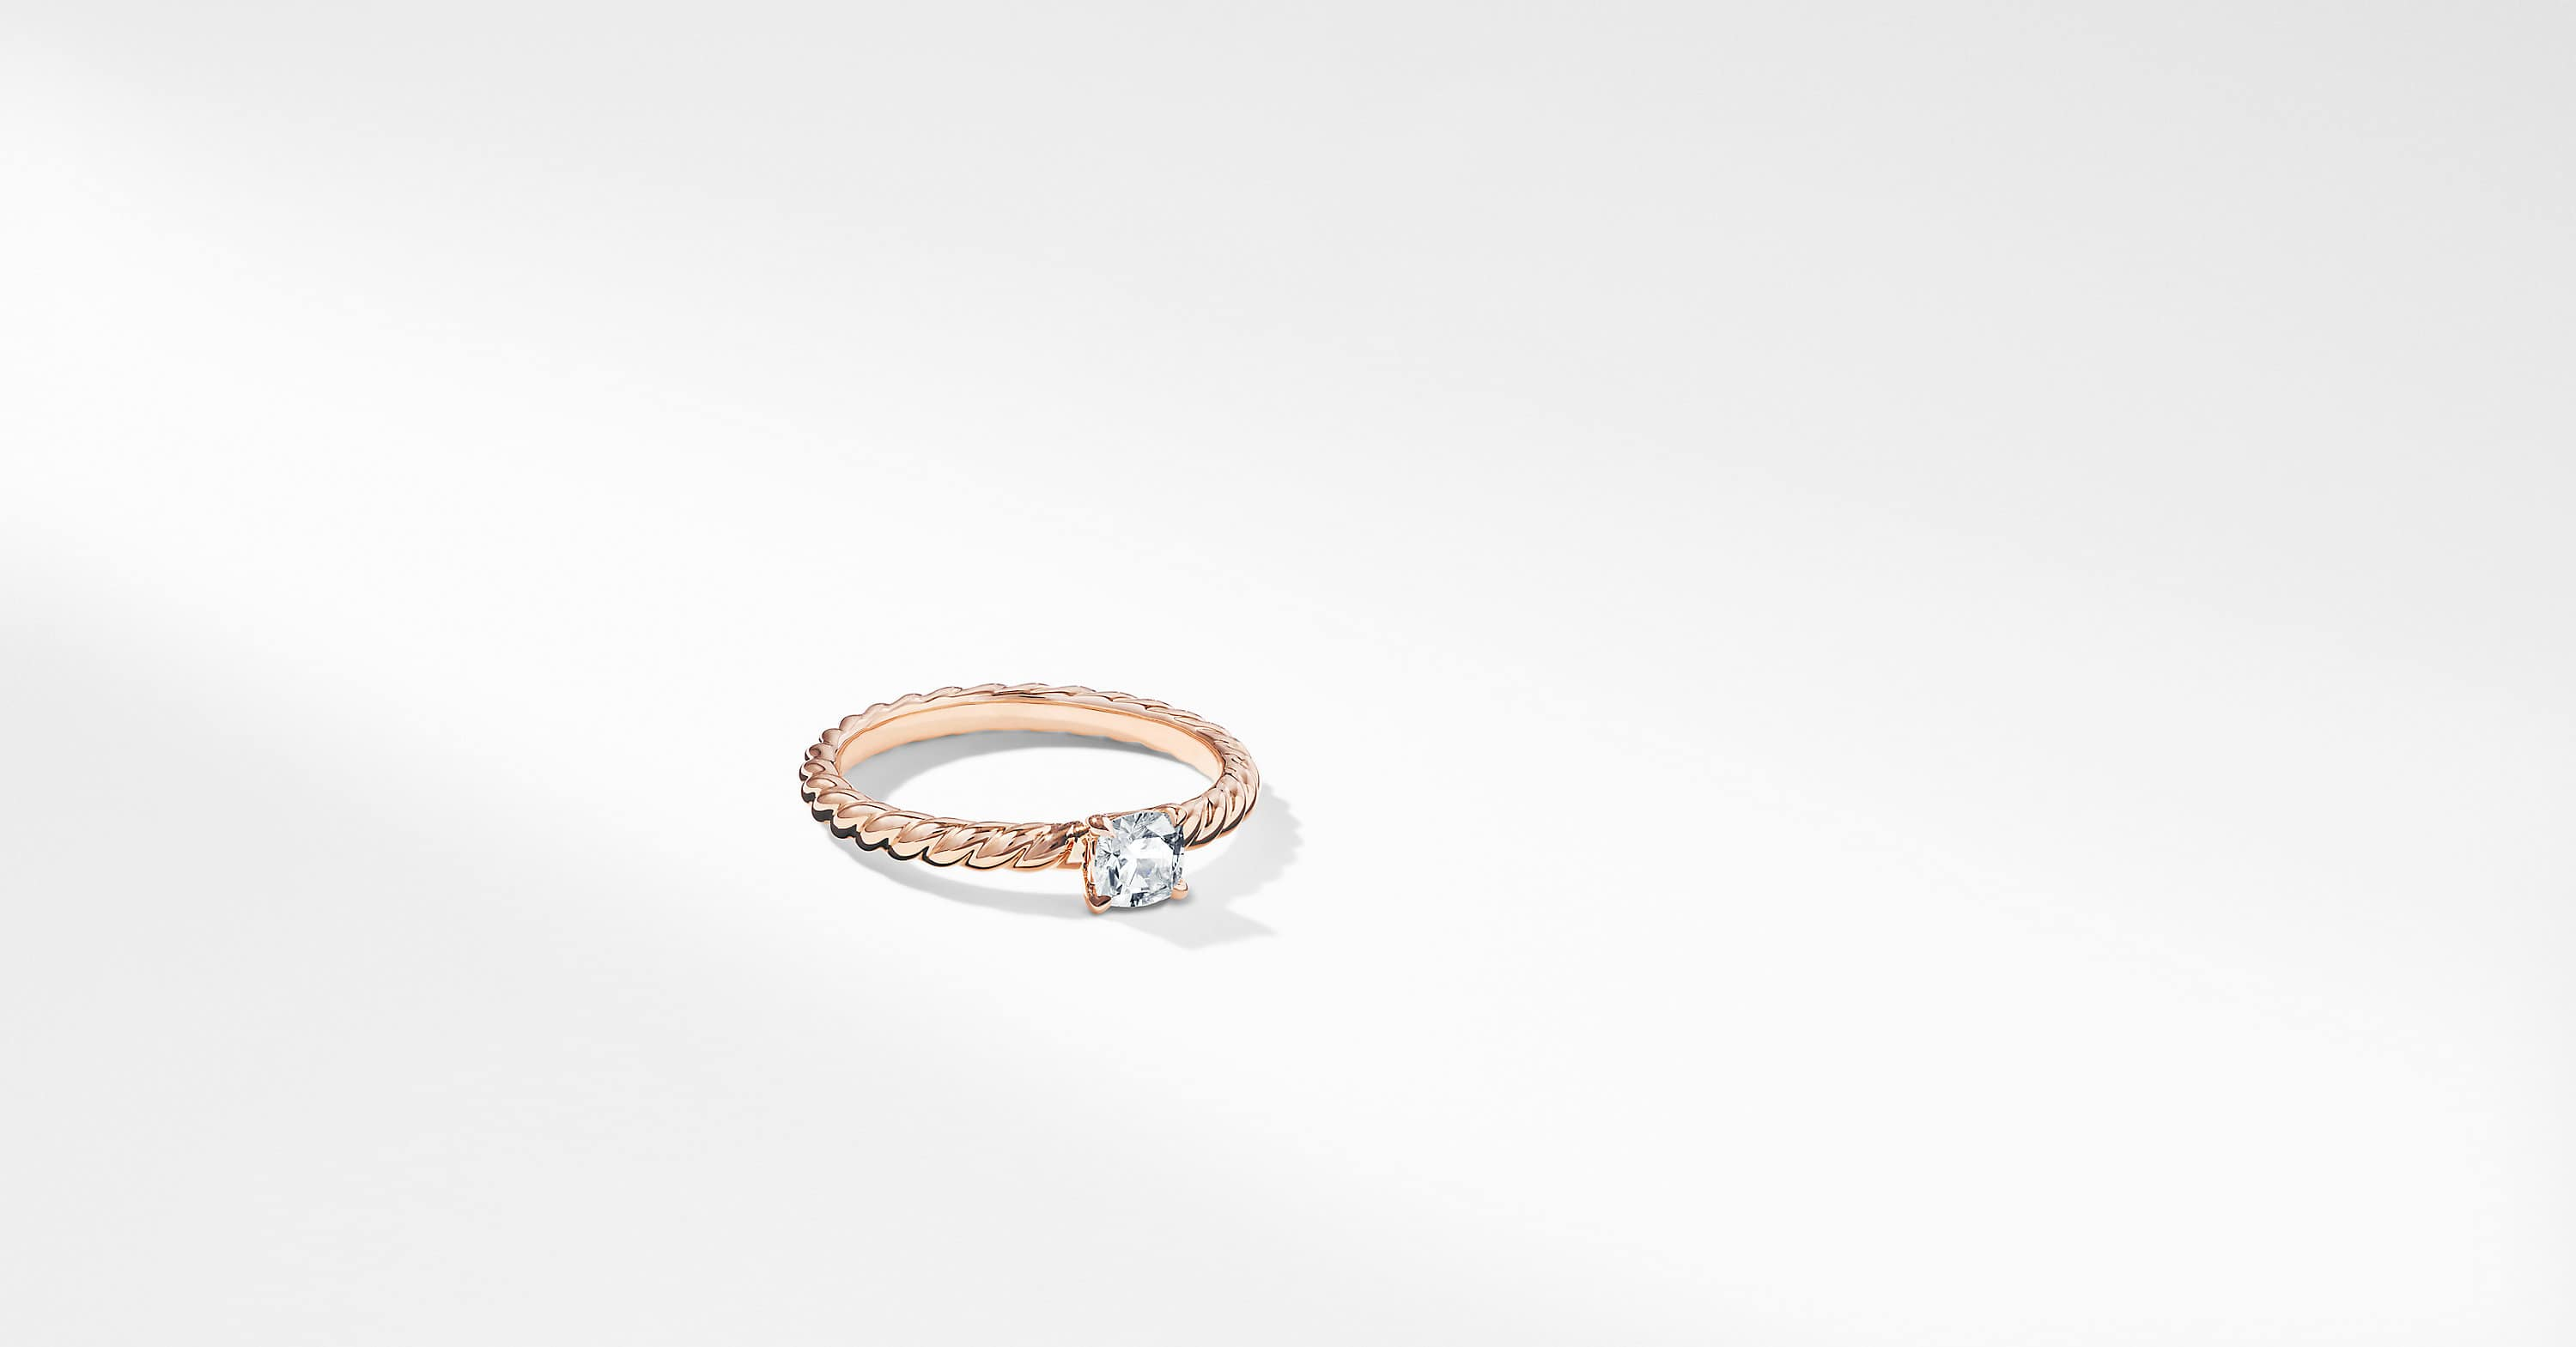 DY Unity Petite Cable Engagement Ring in 18K Rose Gold, Cushion